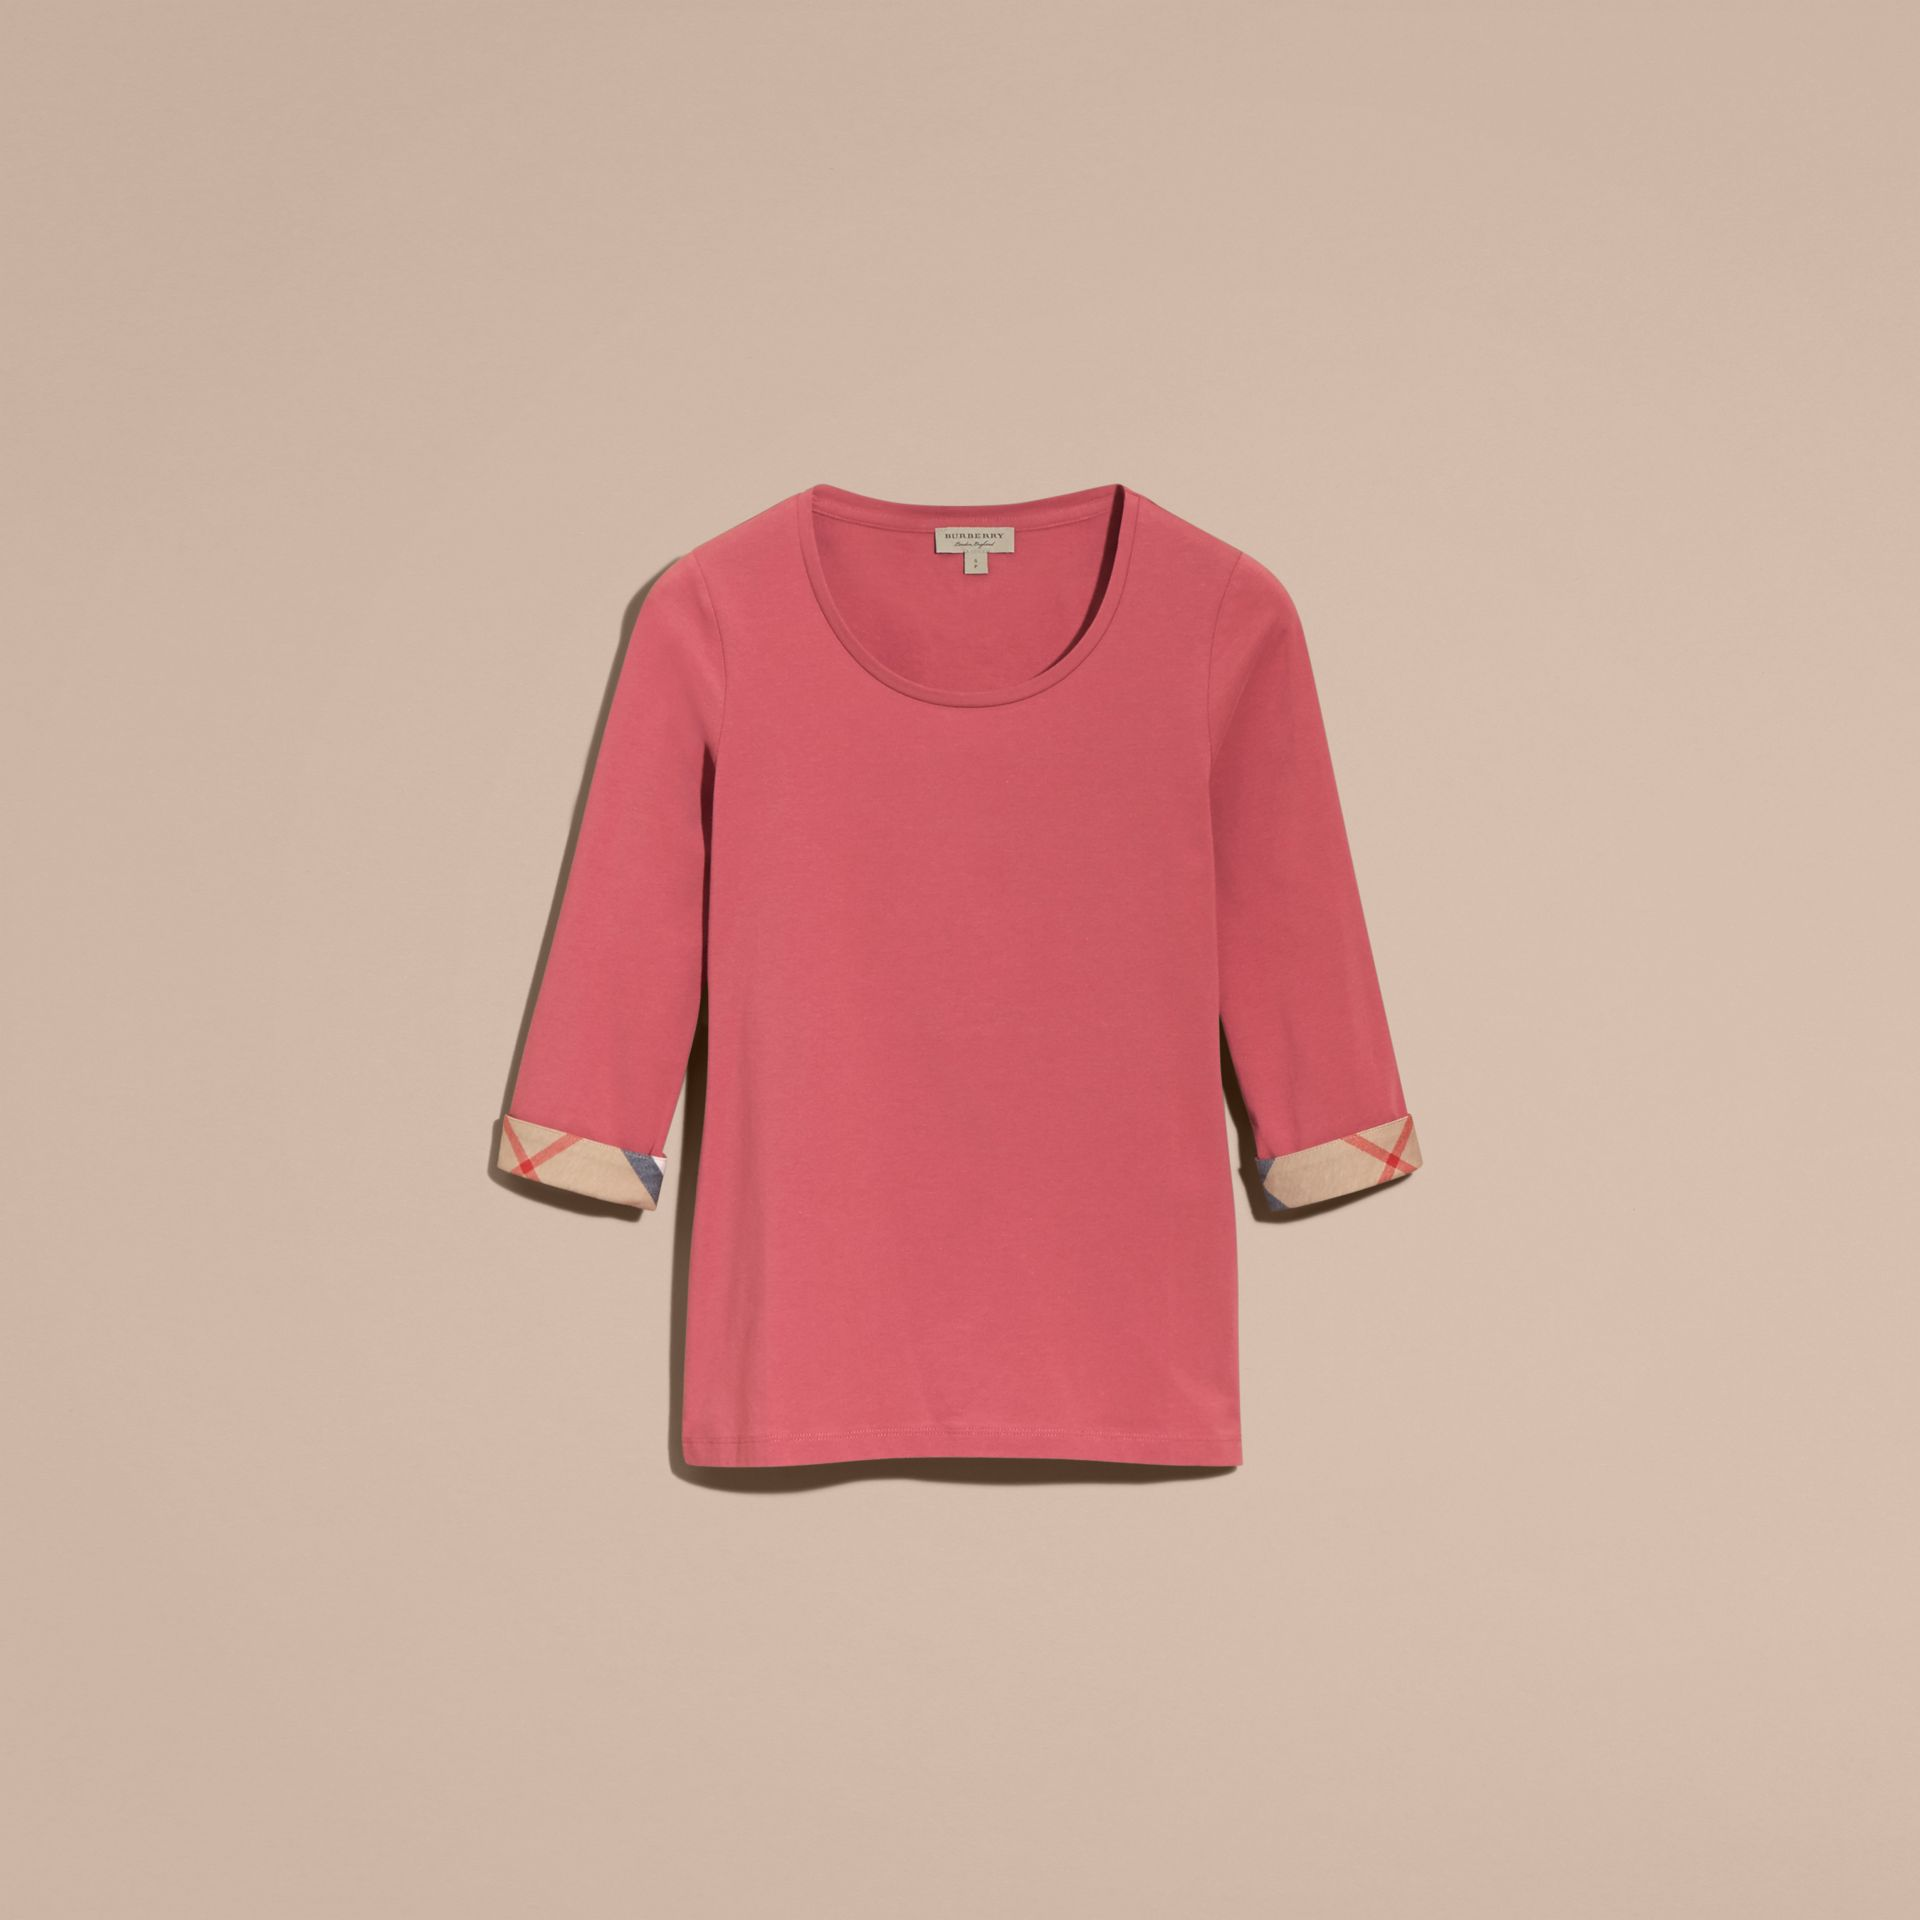 Pink azalea Three-quarter Sleeved Stretch Cotton T-shirt with Check Trim Pink Azalea - gallery image 4